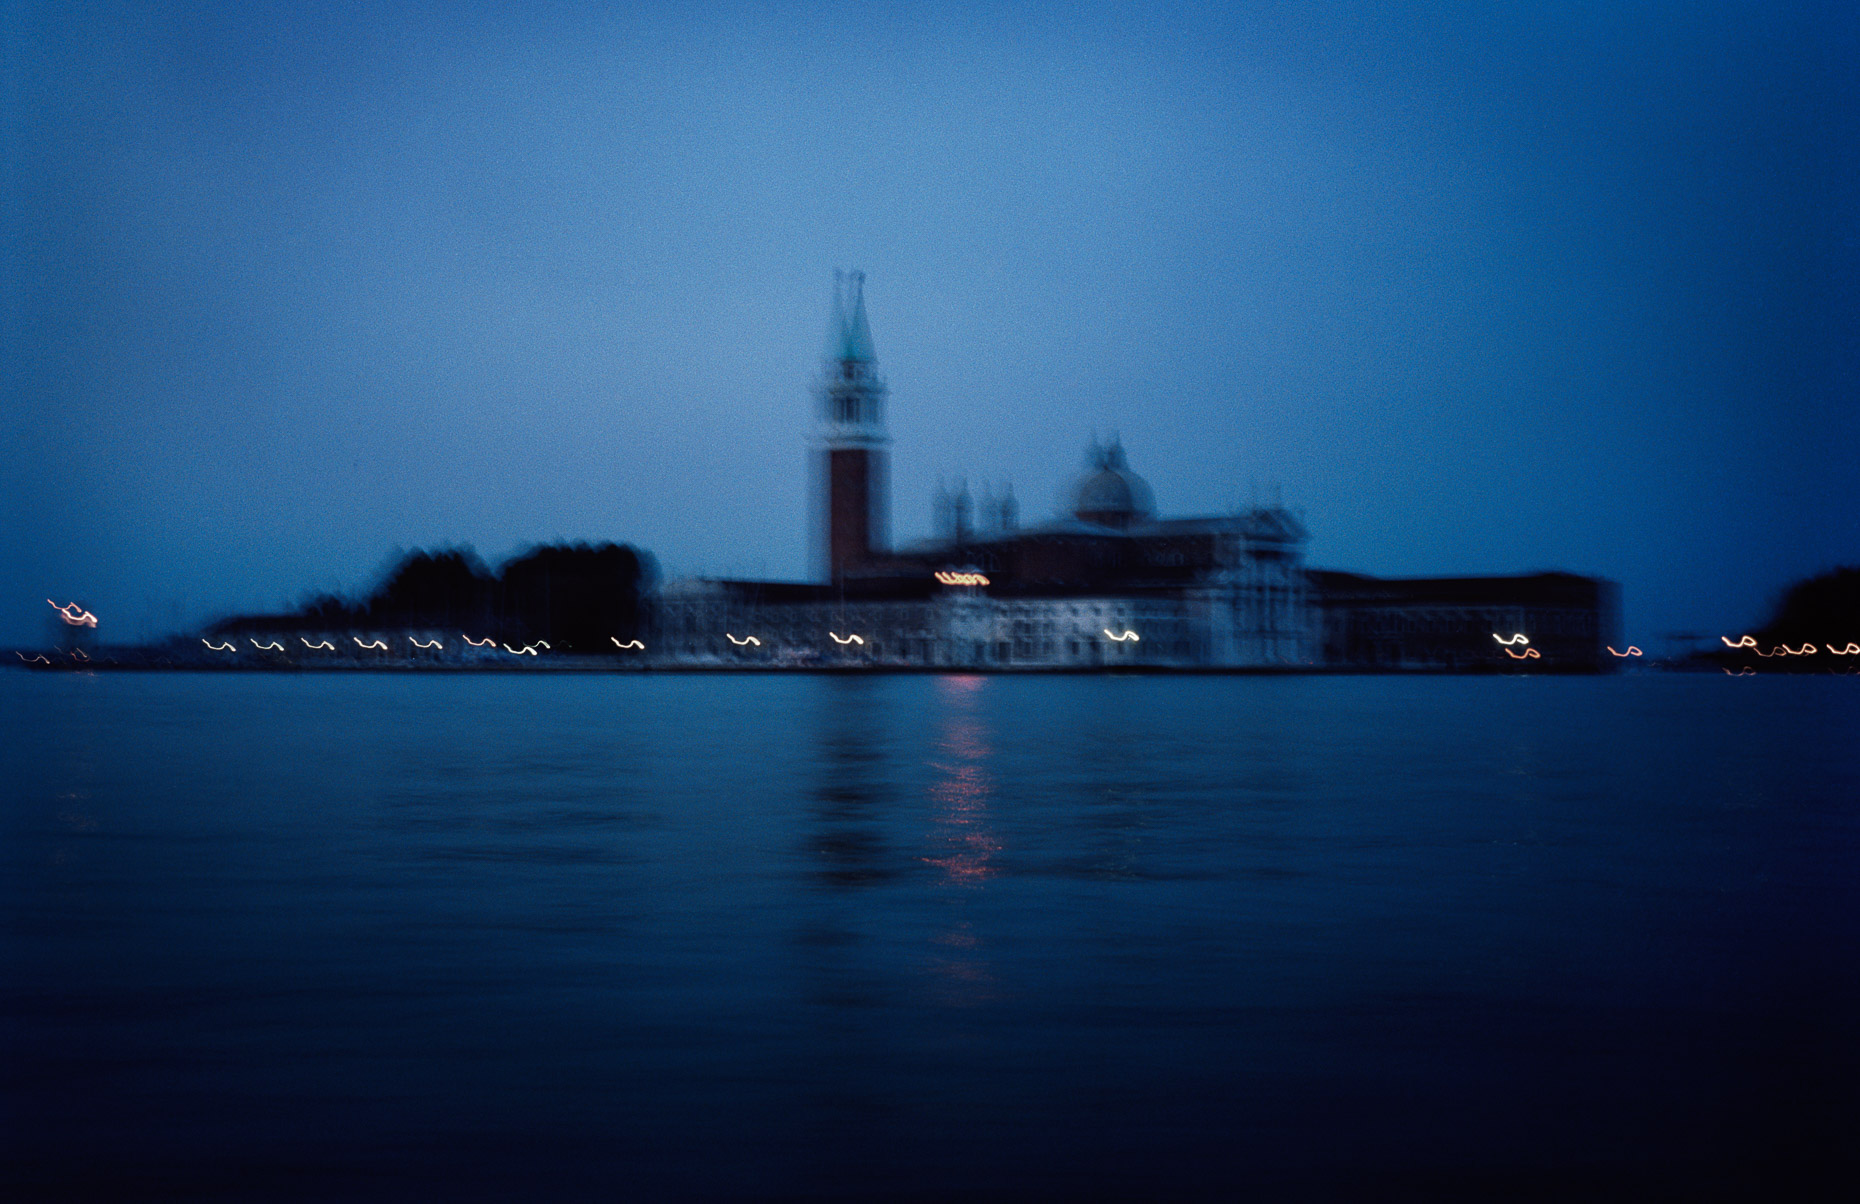 Personal_Italy_Venice_21-3-2-20